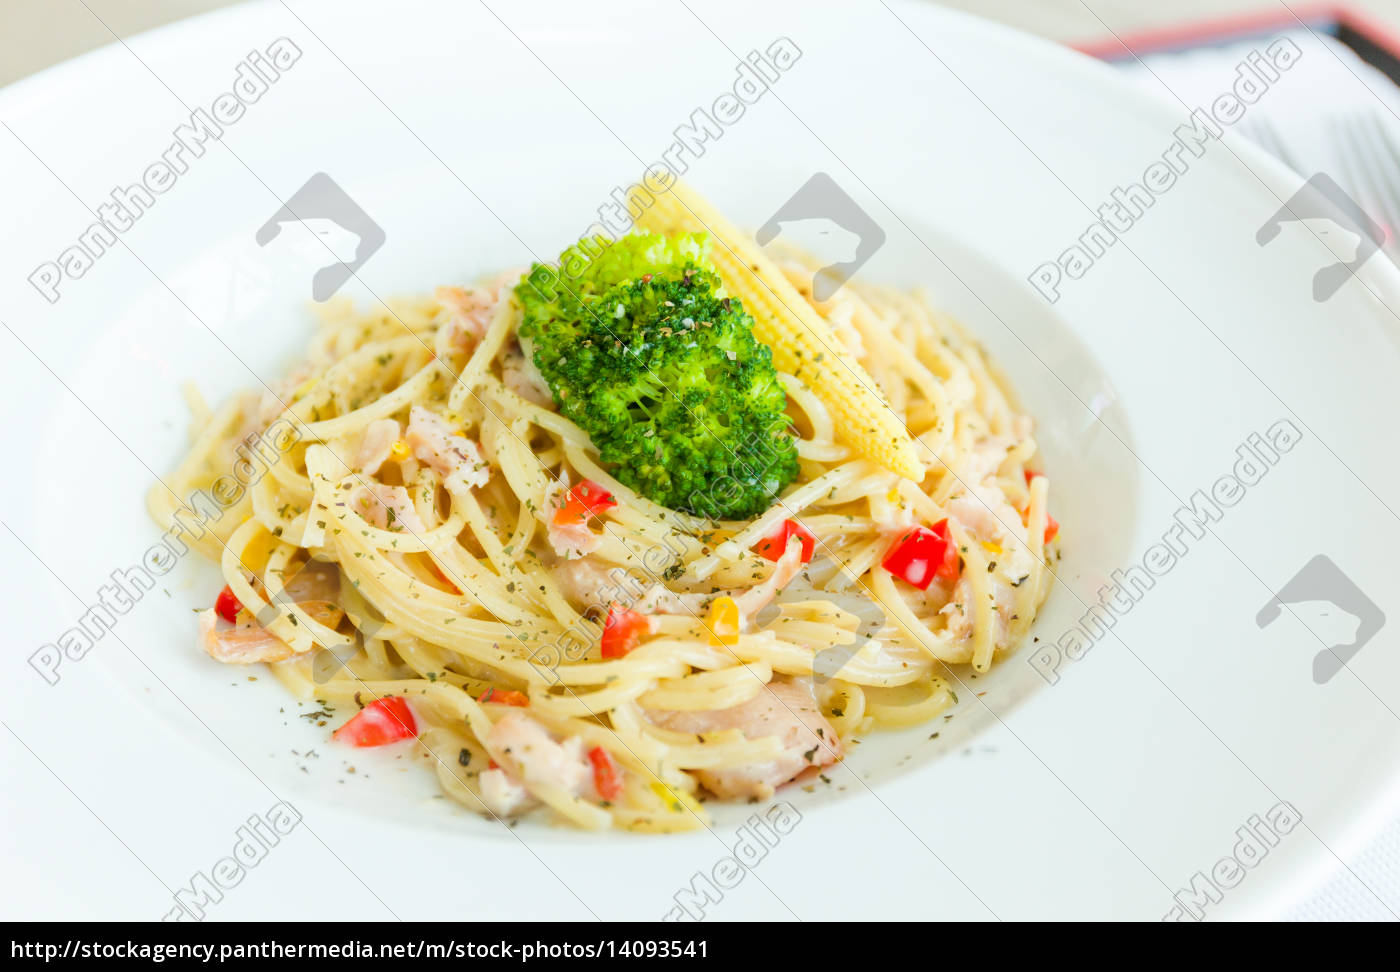 spaghetti, noodles, pasta, meal - 14093541